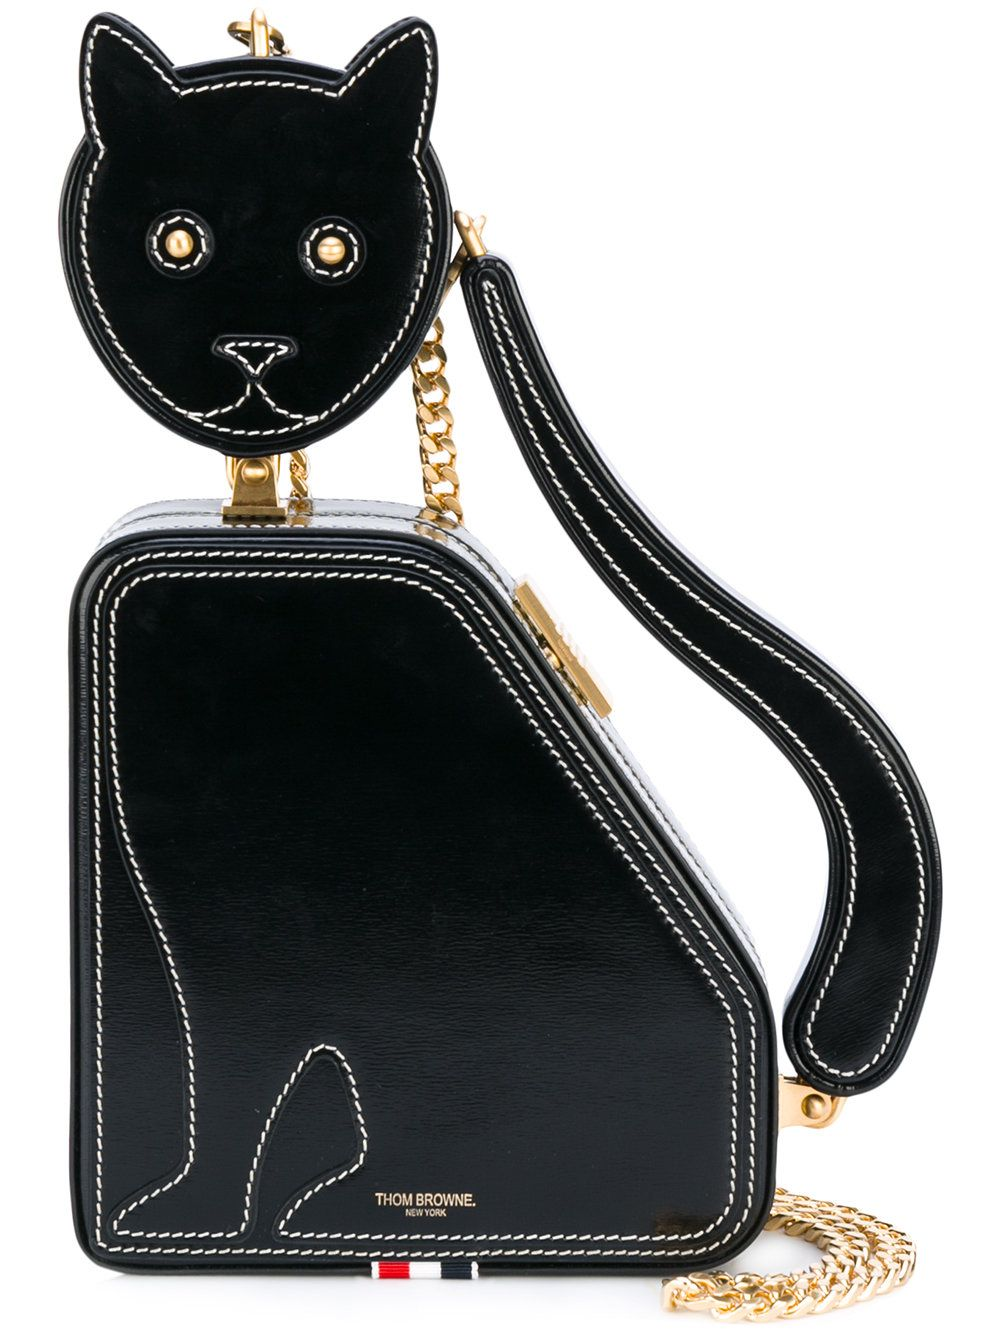 05933dfe1 Thom Browne Cat Bag With Chain Shoulder Strap In Calf Leather